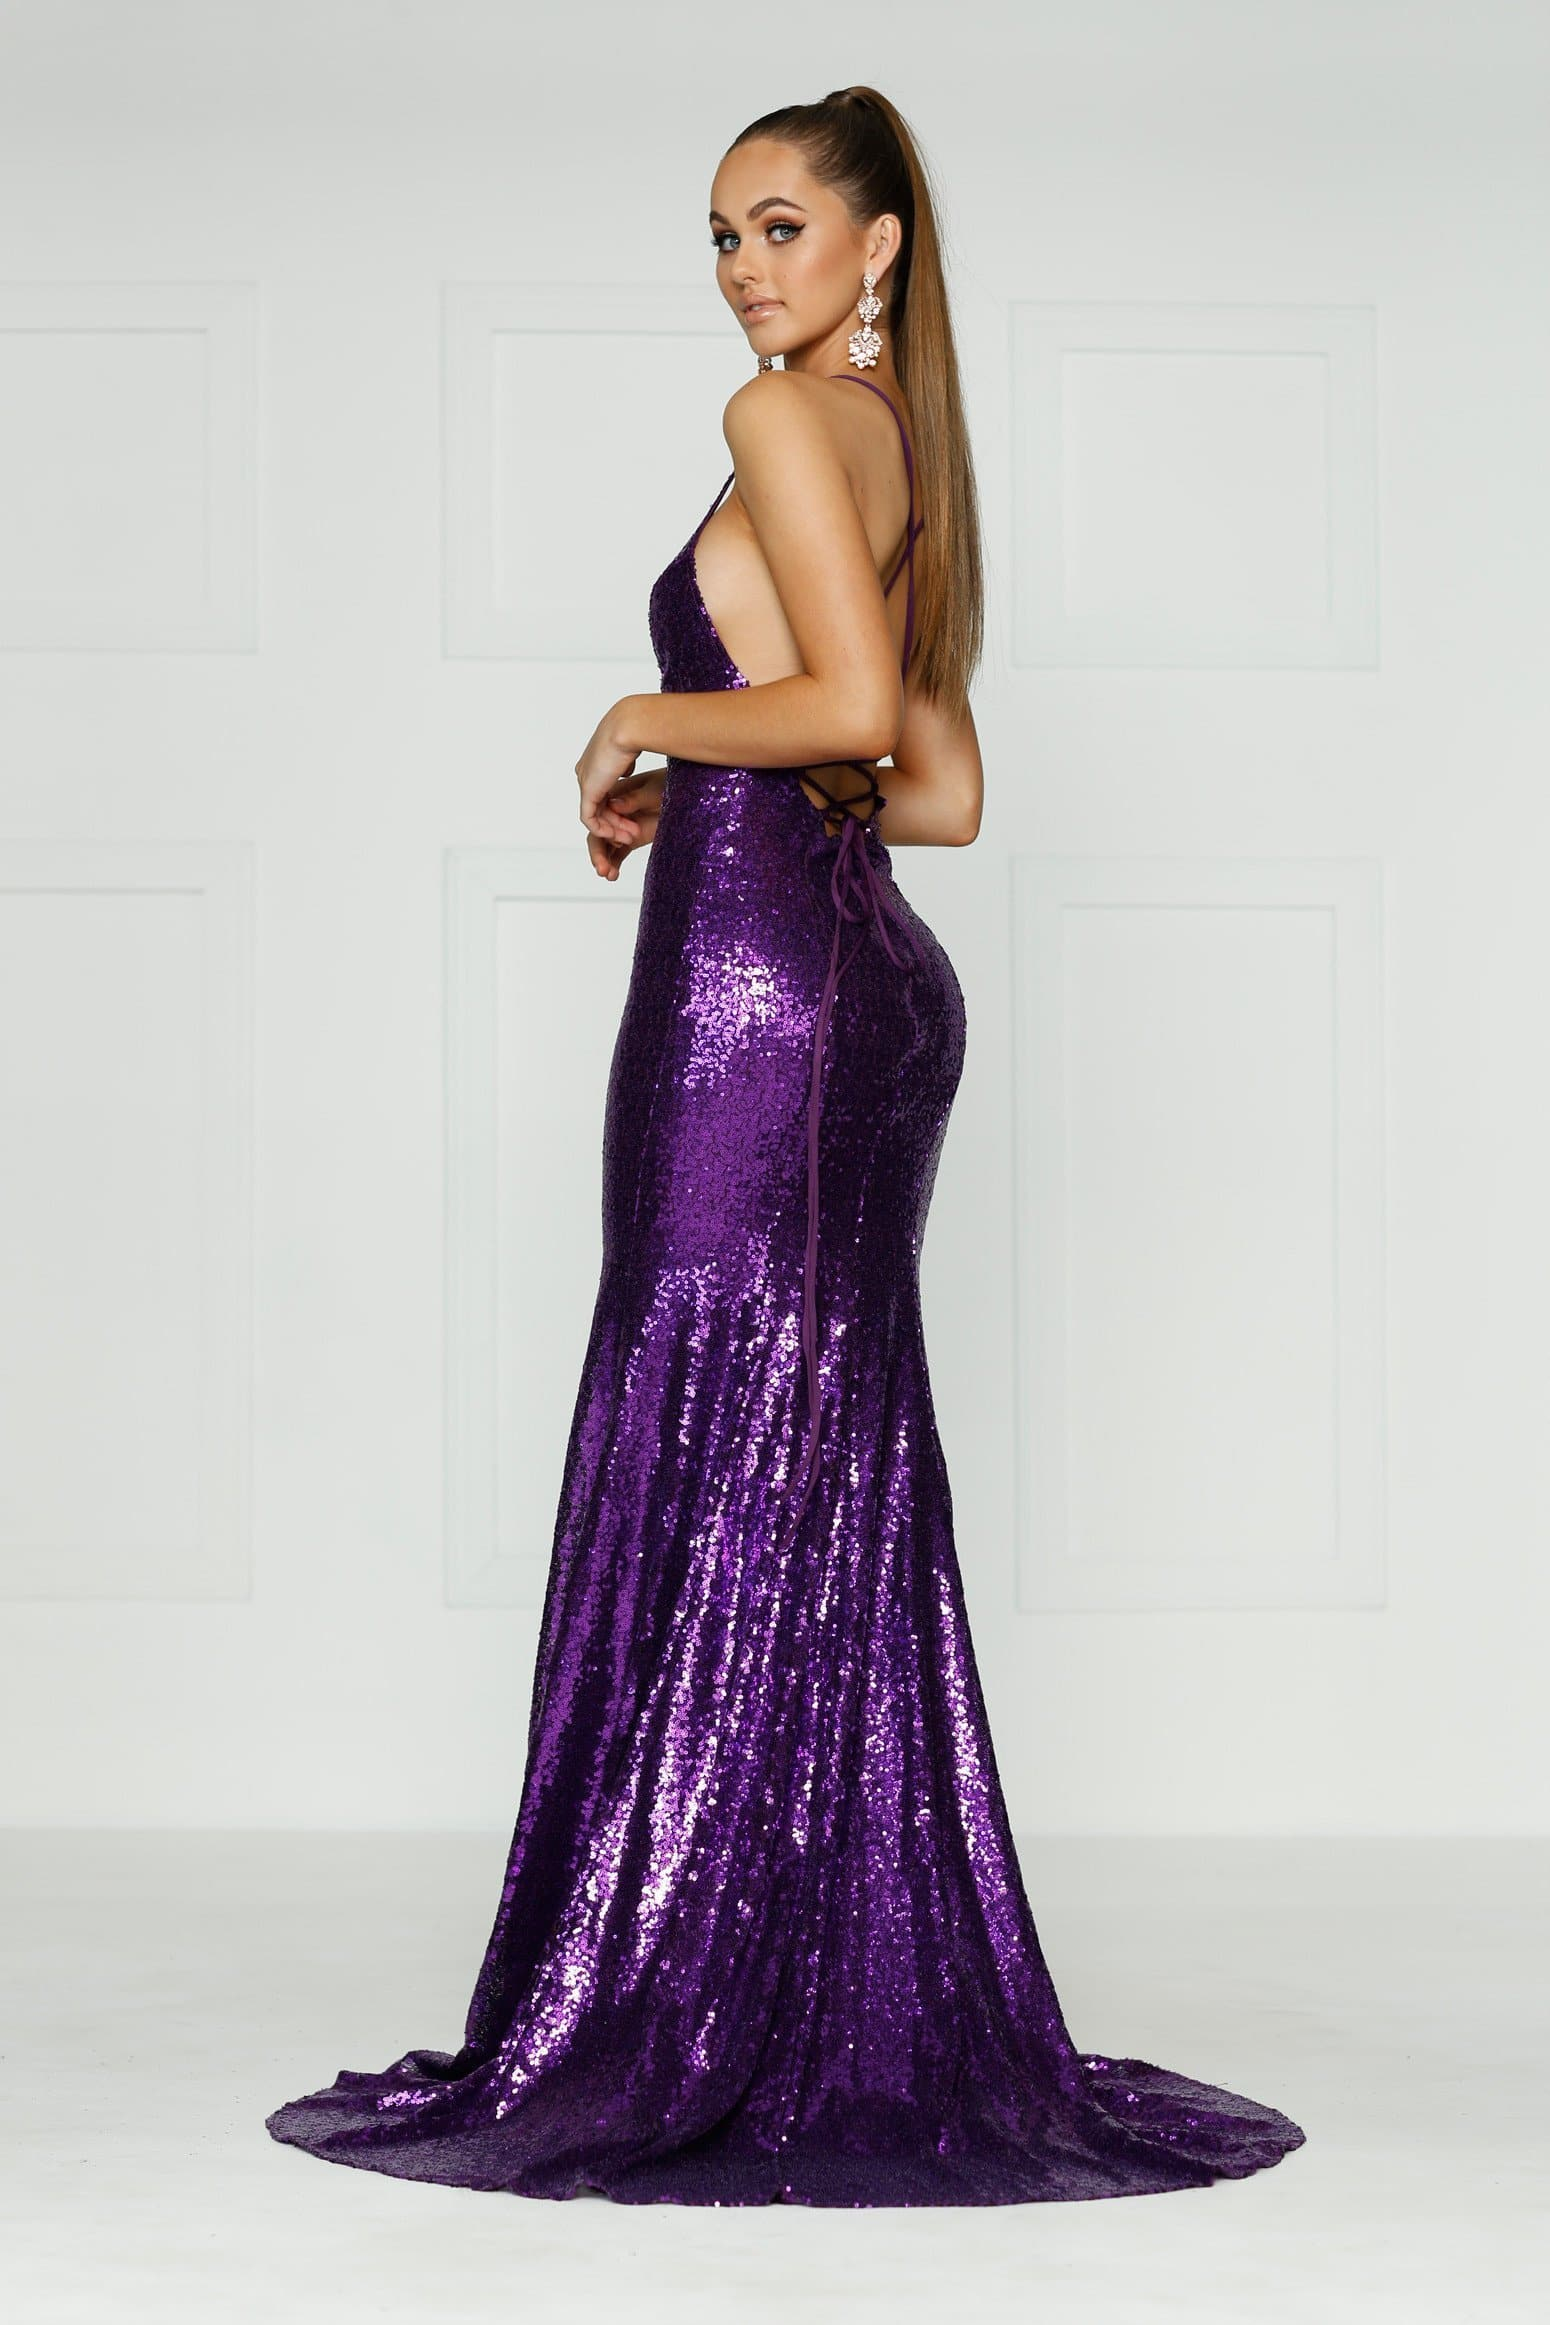 A&N Kendall - Purple Sequin Formal Gown with Criss Cross Back – A&N ...